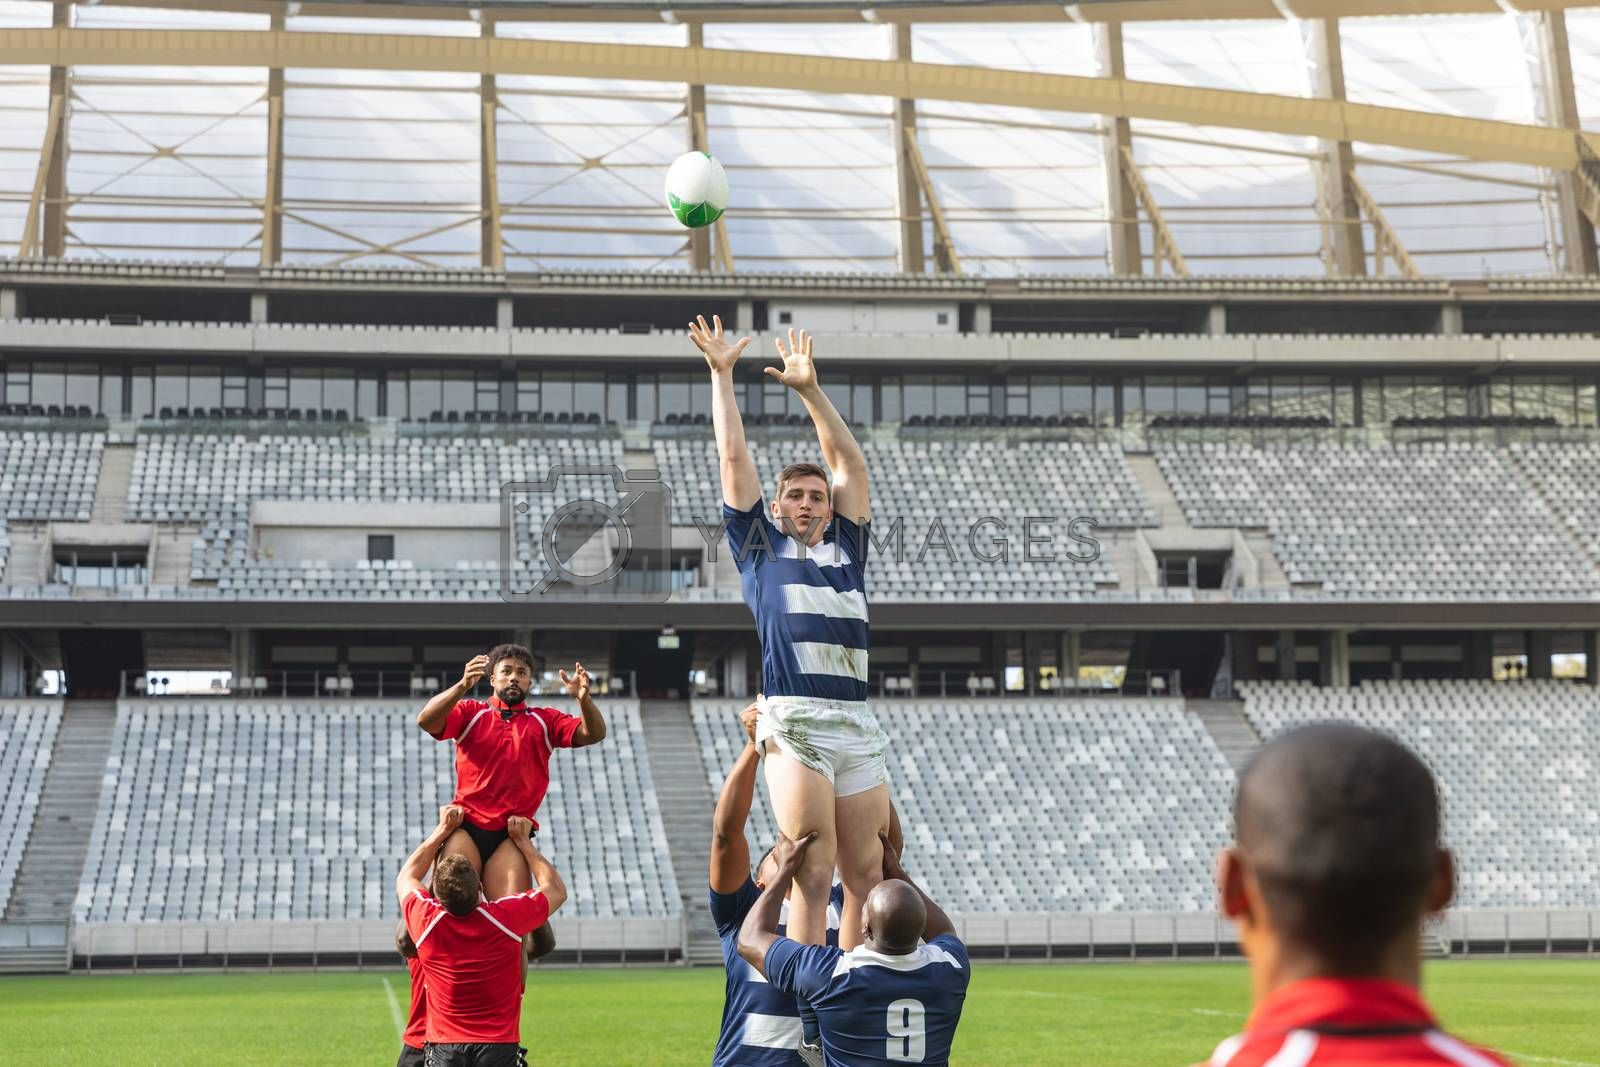 Front view of Caucasian male rugby player and African American rugby player trying to catch the ball in the air while team members help them in stadium on sunny day.